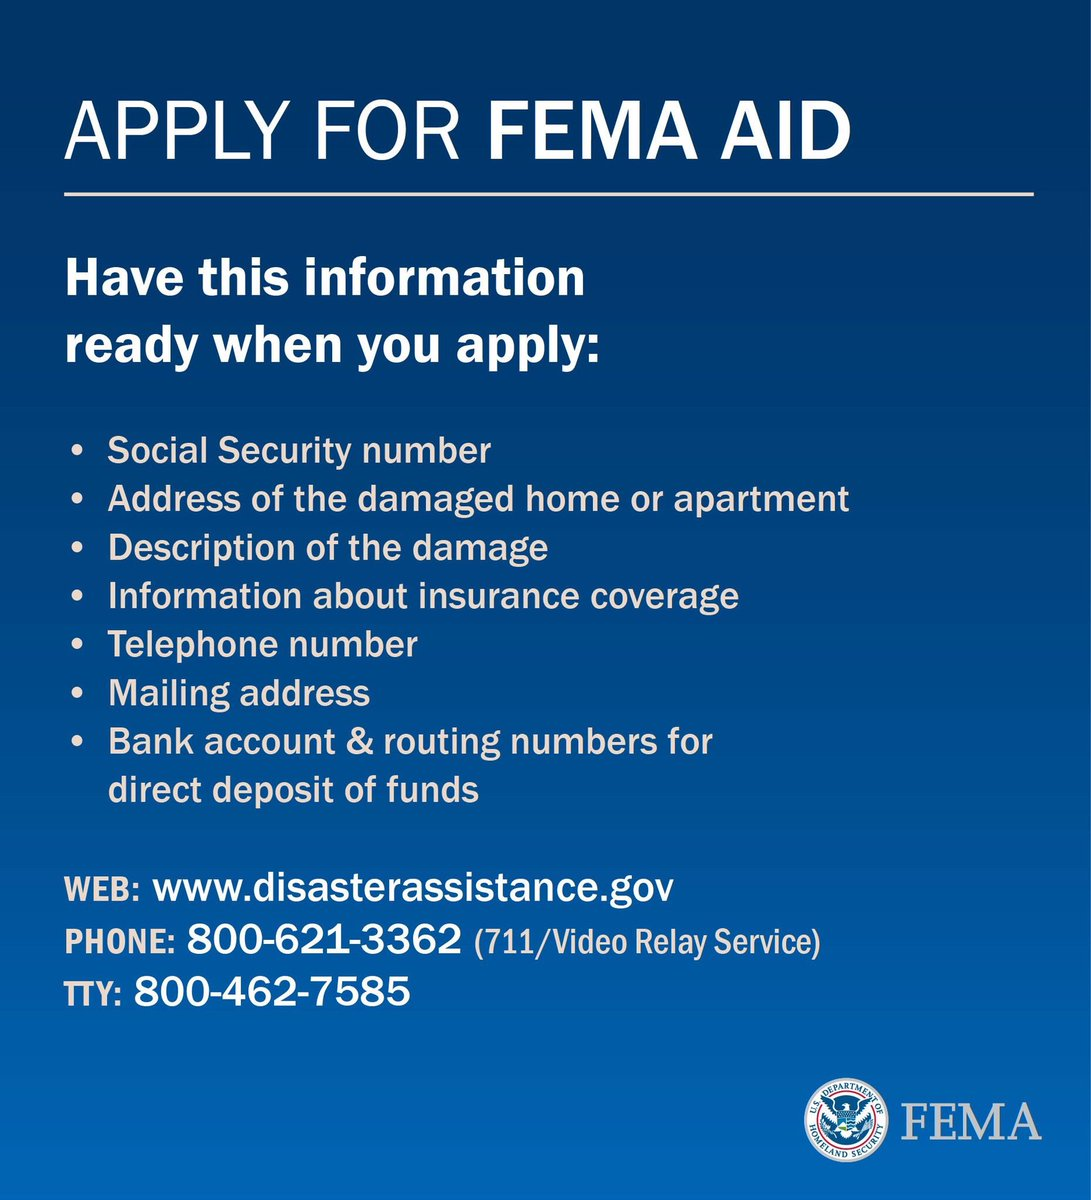 #FL: When you visit a Disaster Recovery Center in person-bring all important information with you.  http://www. fema.gov/disaster/updat es/4337/visit-us-disaster-recovery-center-drc &nbsp; …  #Irma <br>http://pic.twitter.com/5gPtBglqQ0